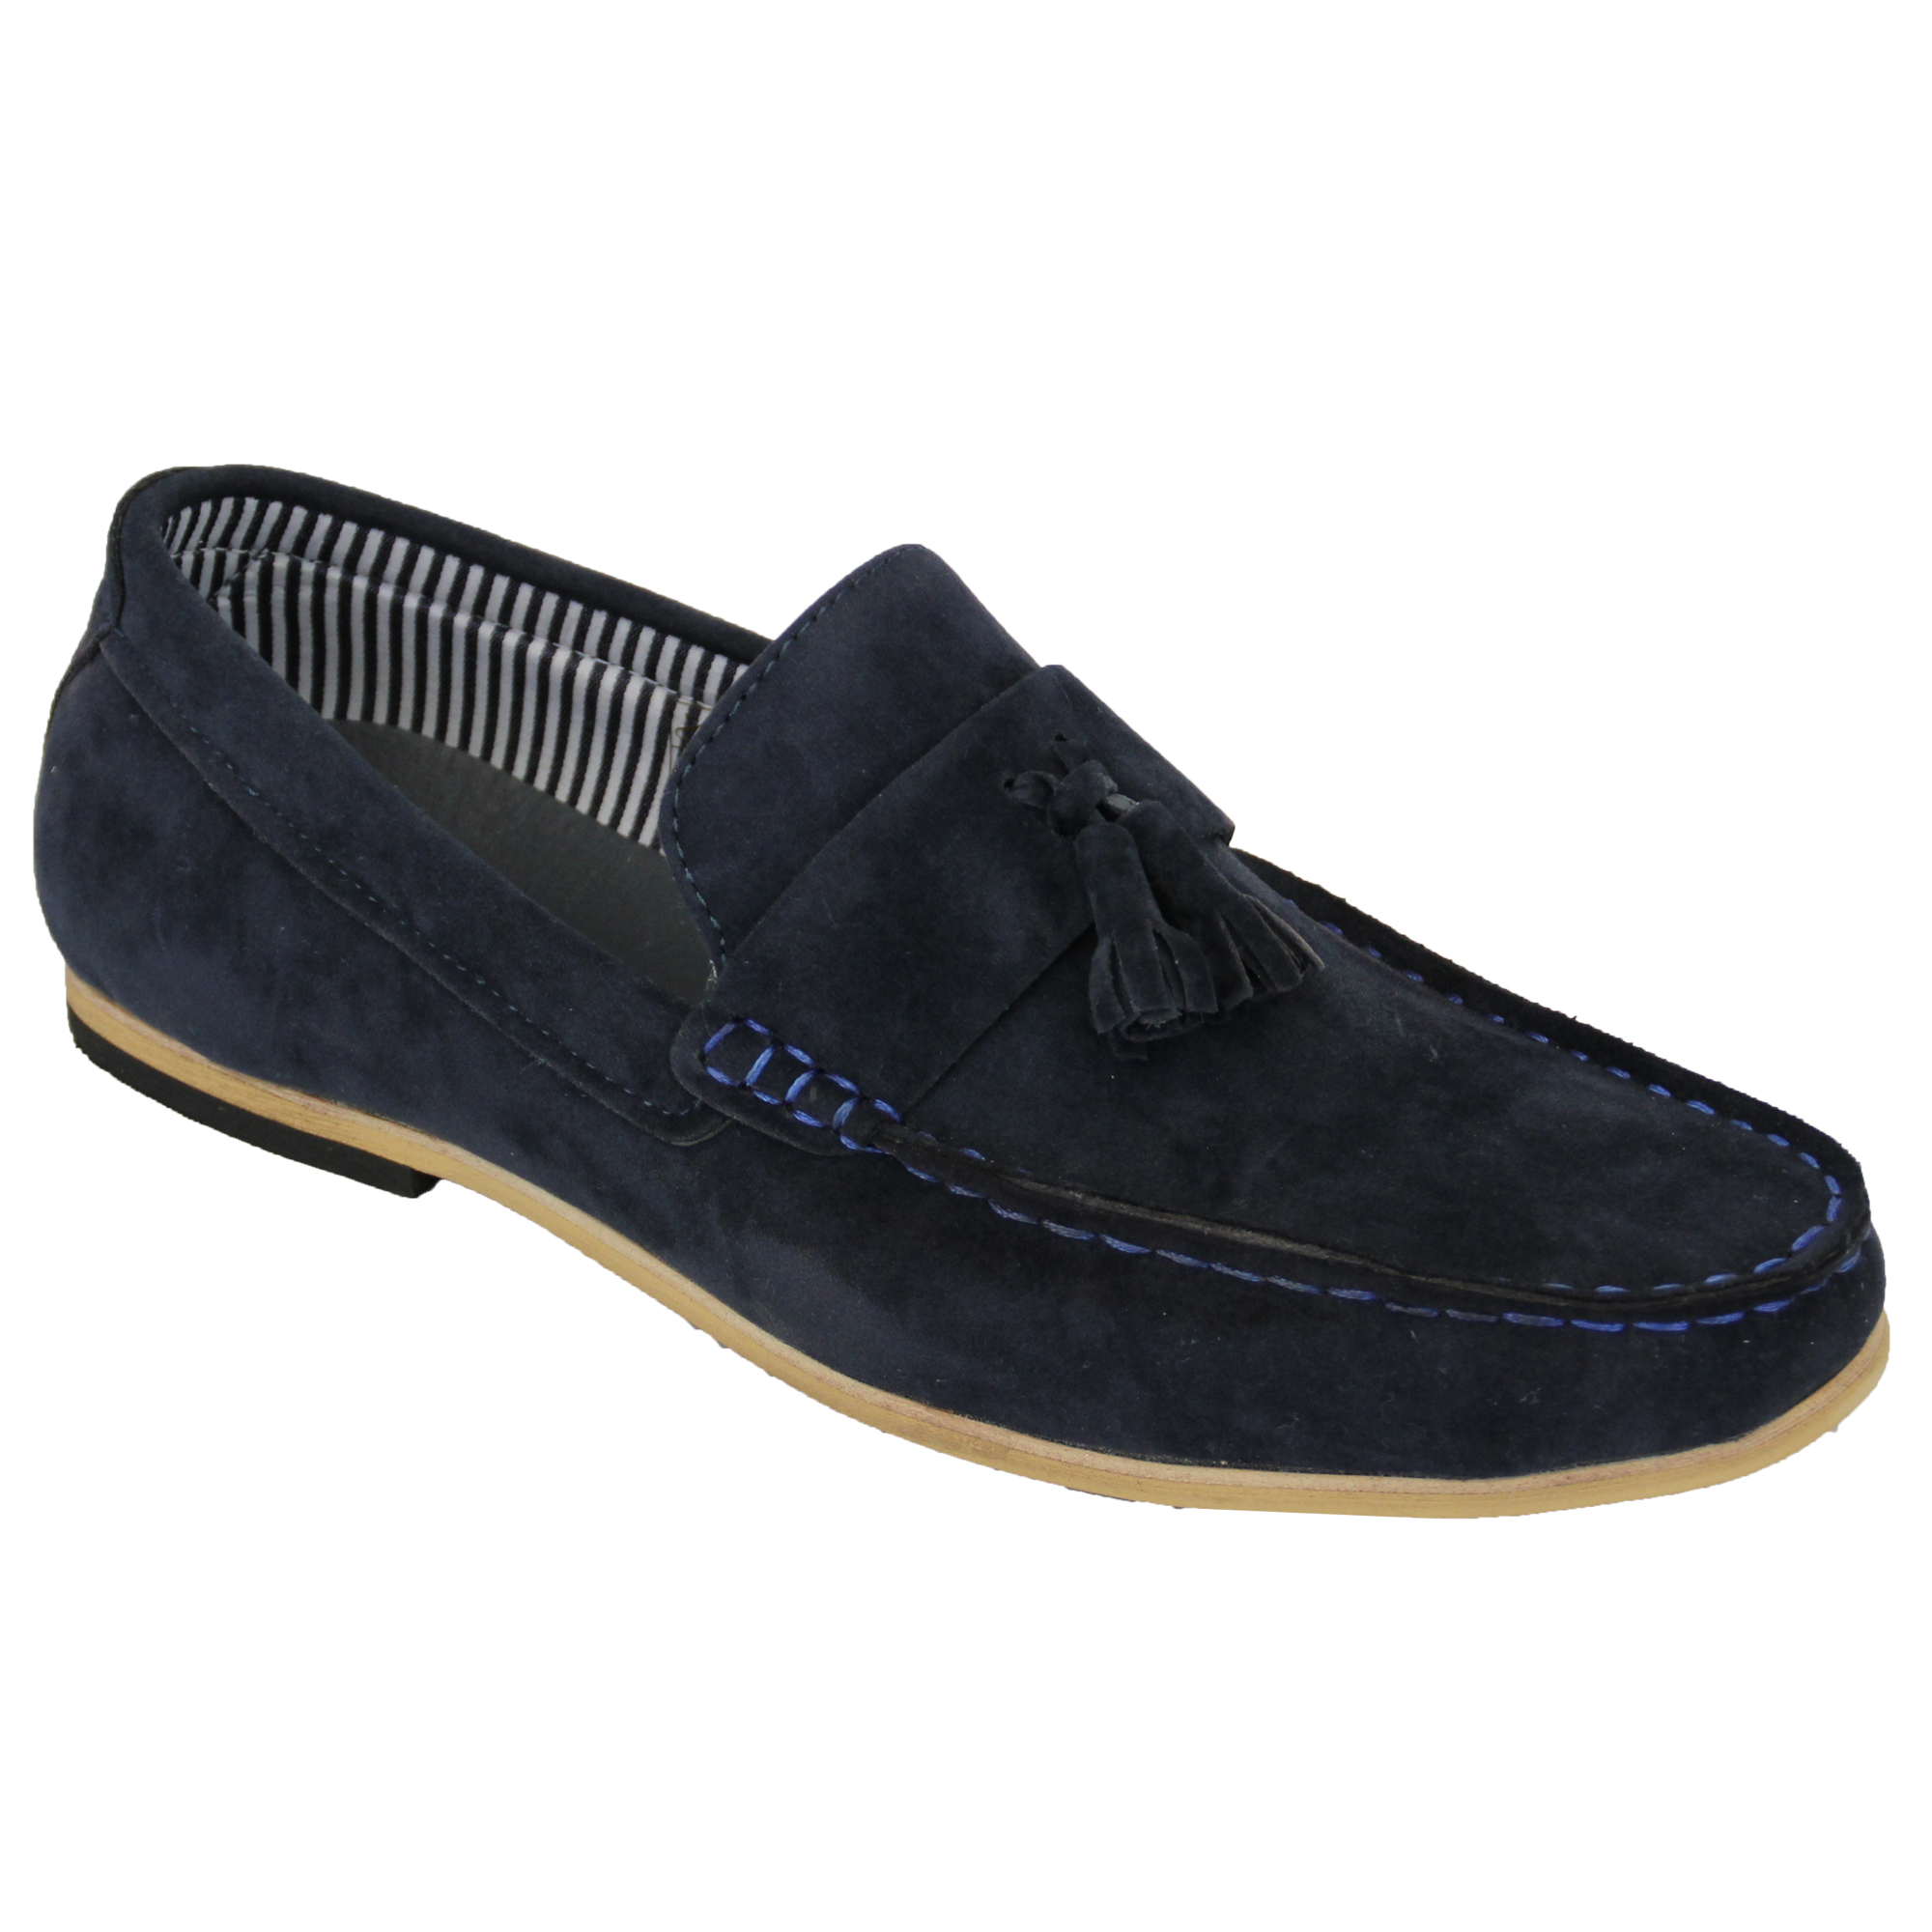 mens moccasins suede look loafers slip on boat shoes by